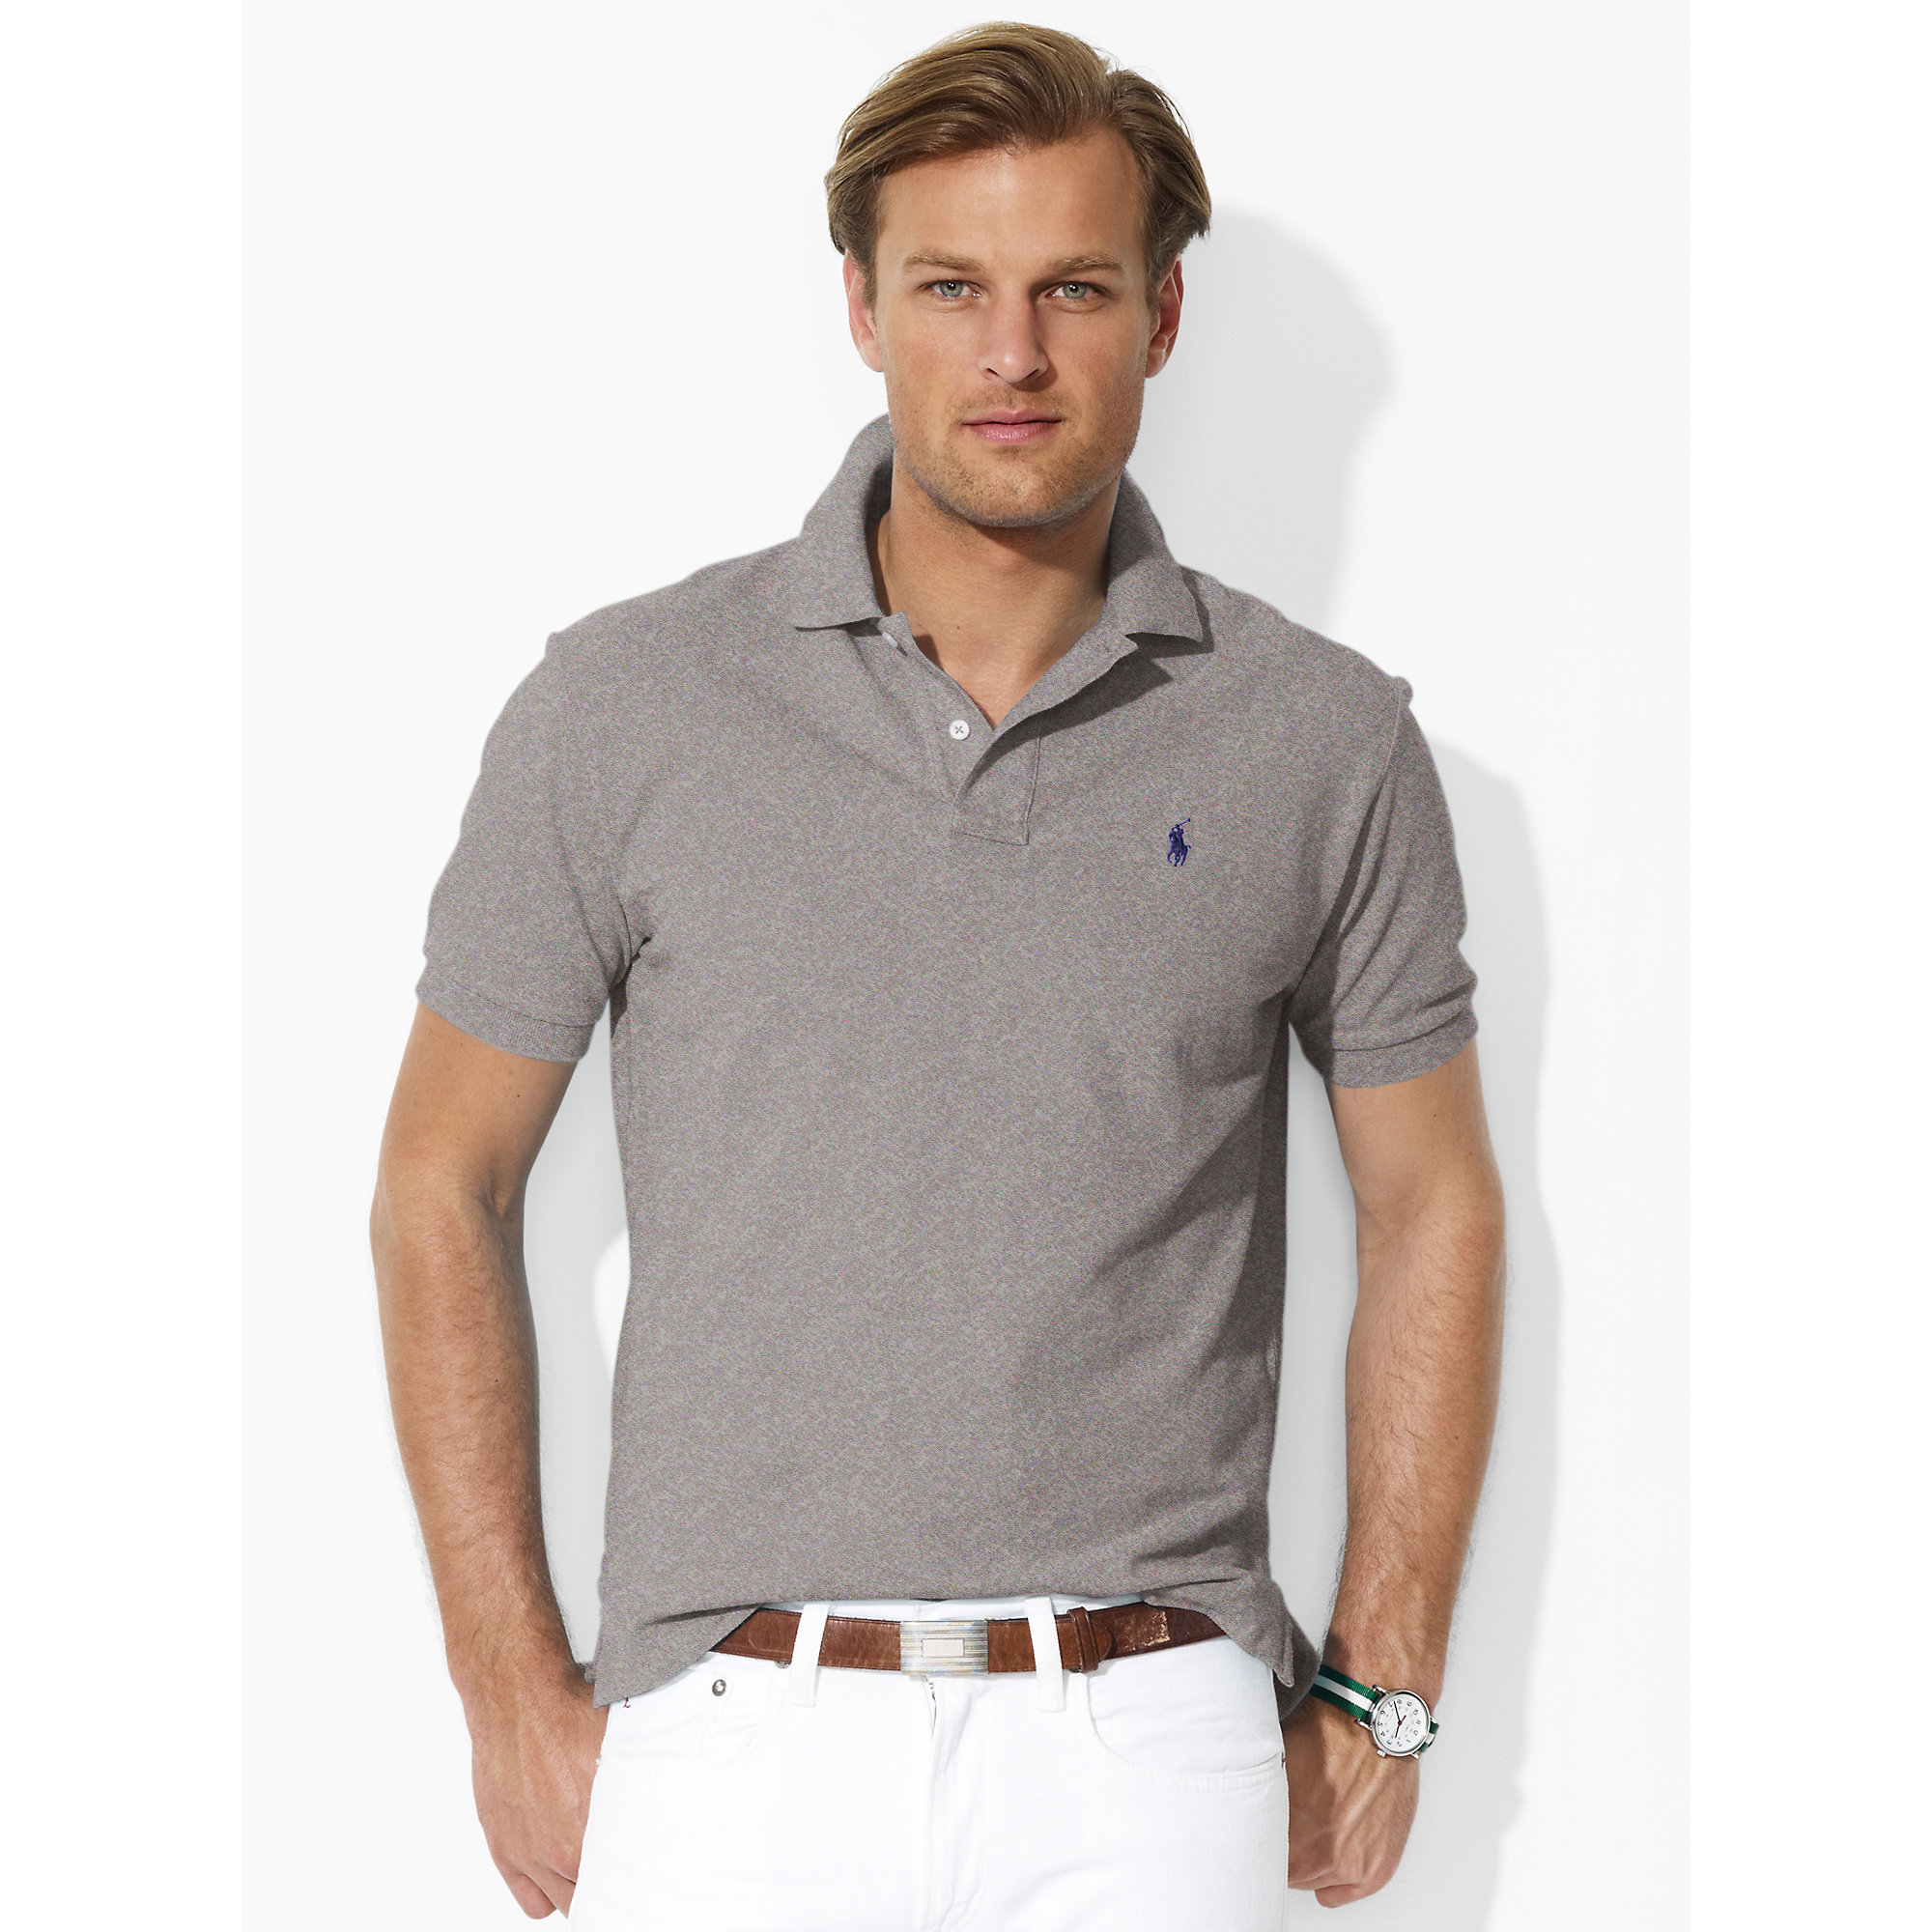 a085c0d3 ... canada lyst polo ralph lauren classic fit mesh polo in gray for men  268d1 351ca